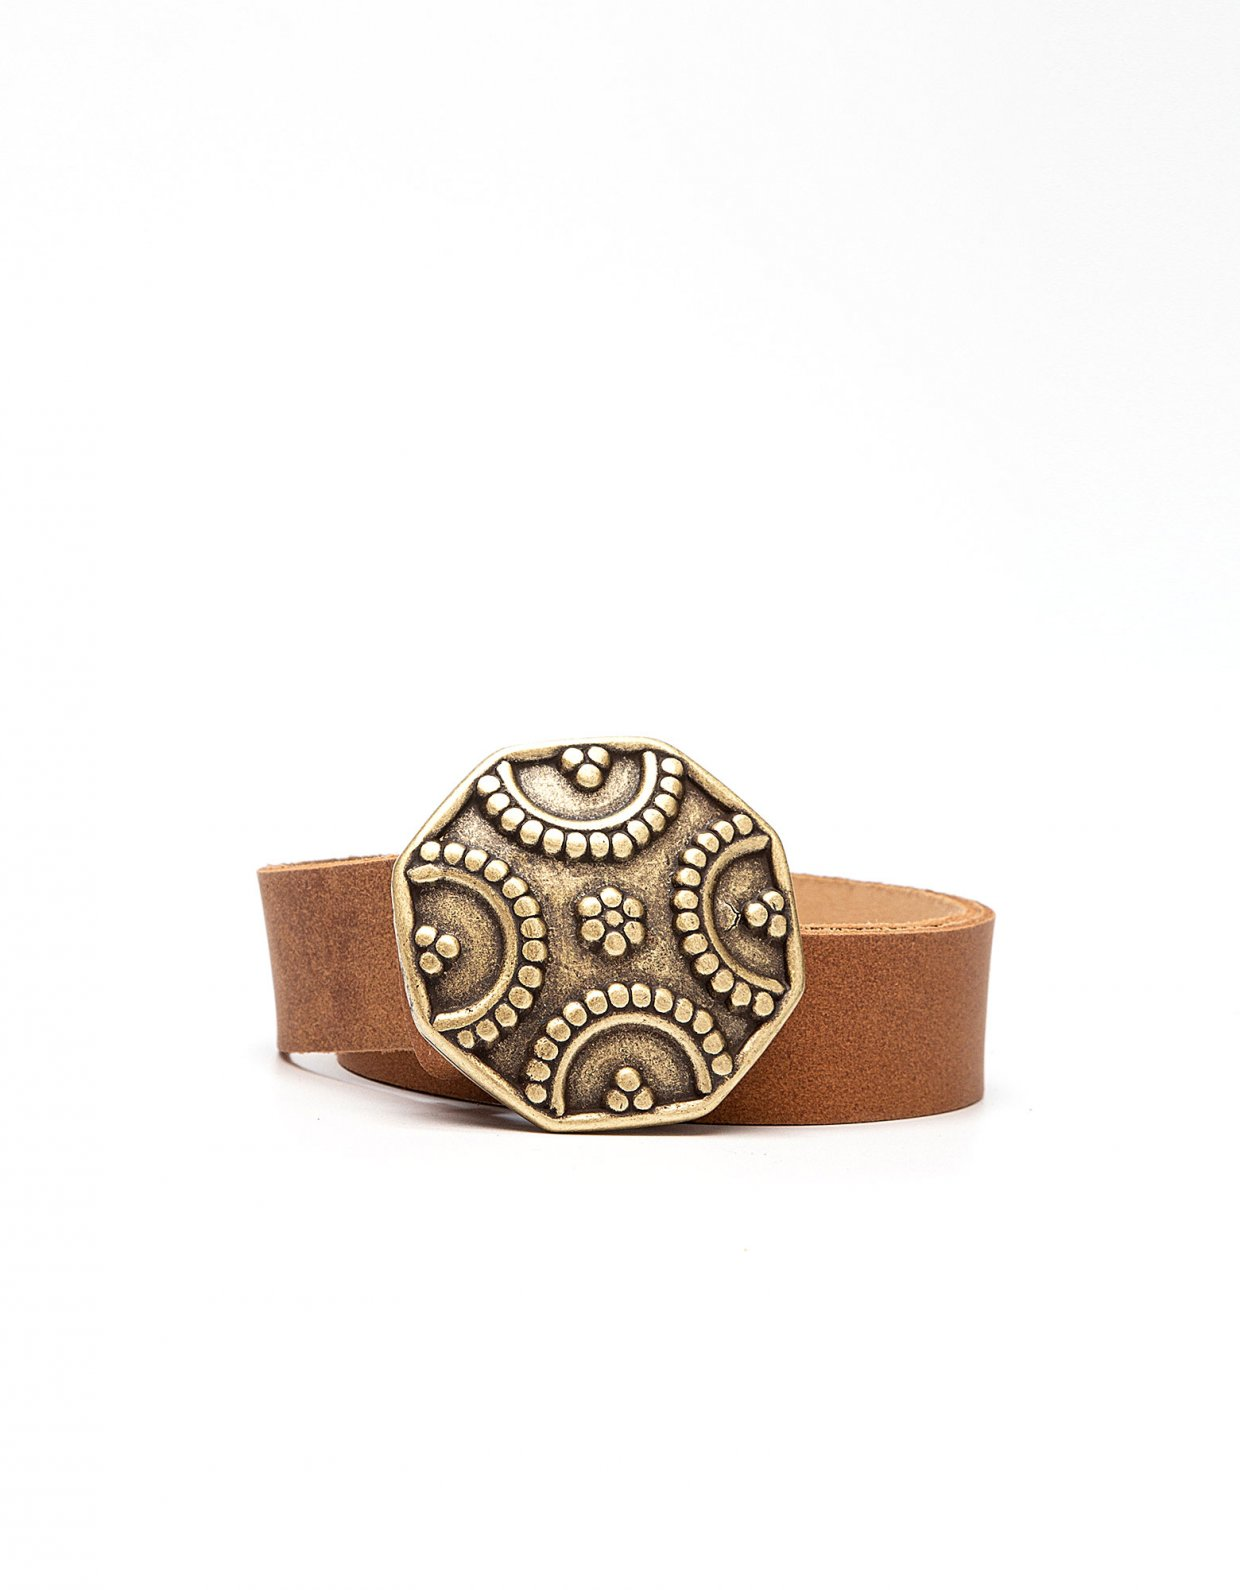 Peace & Chaos Shield leather belt tanned